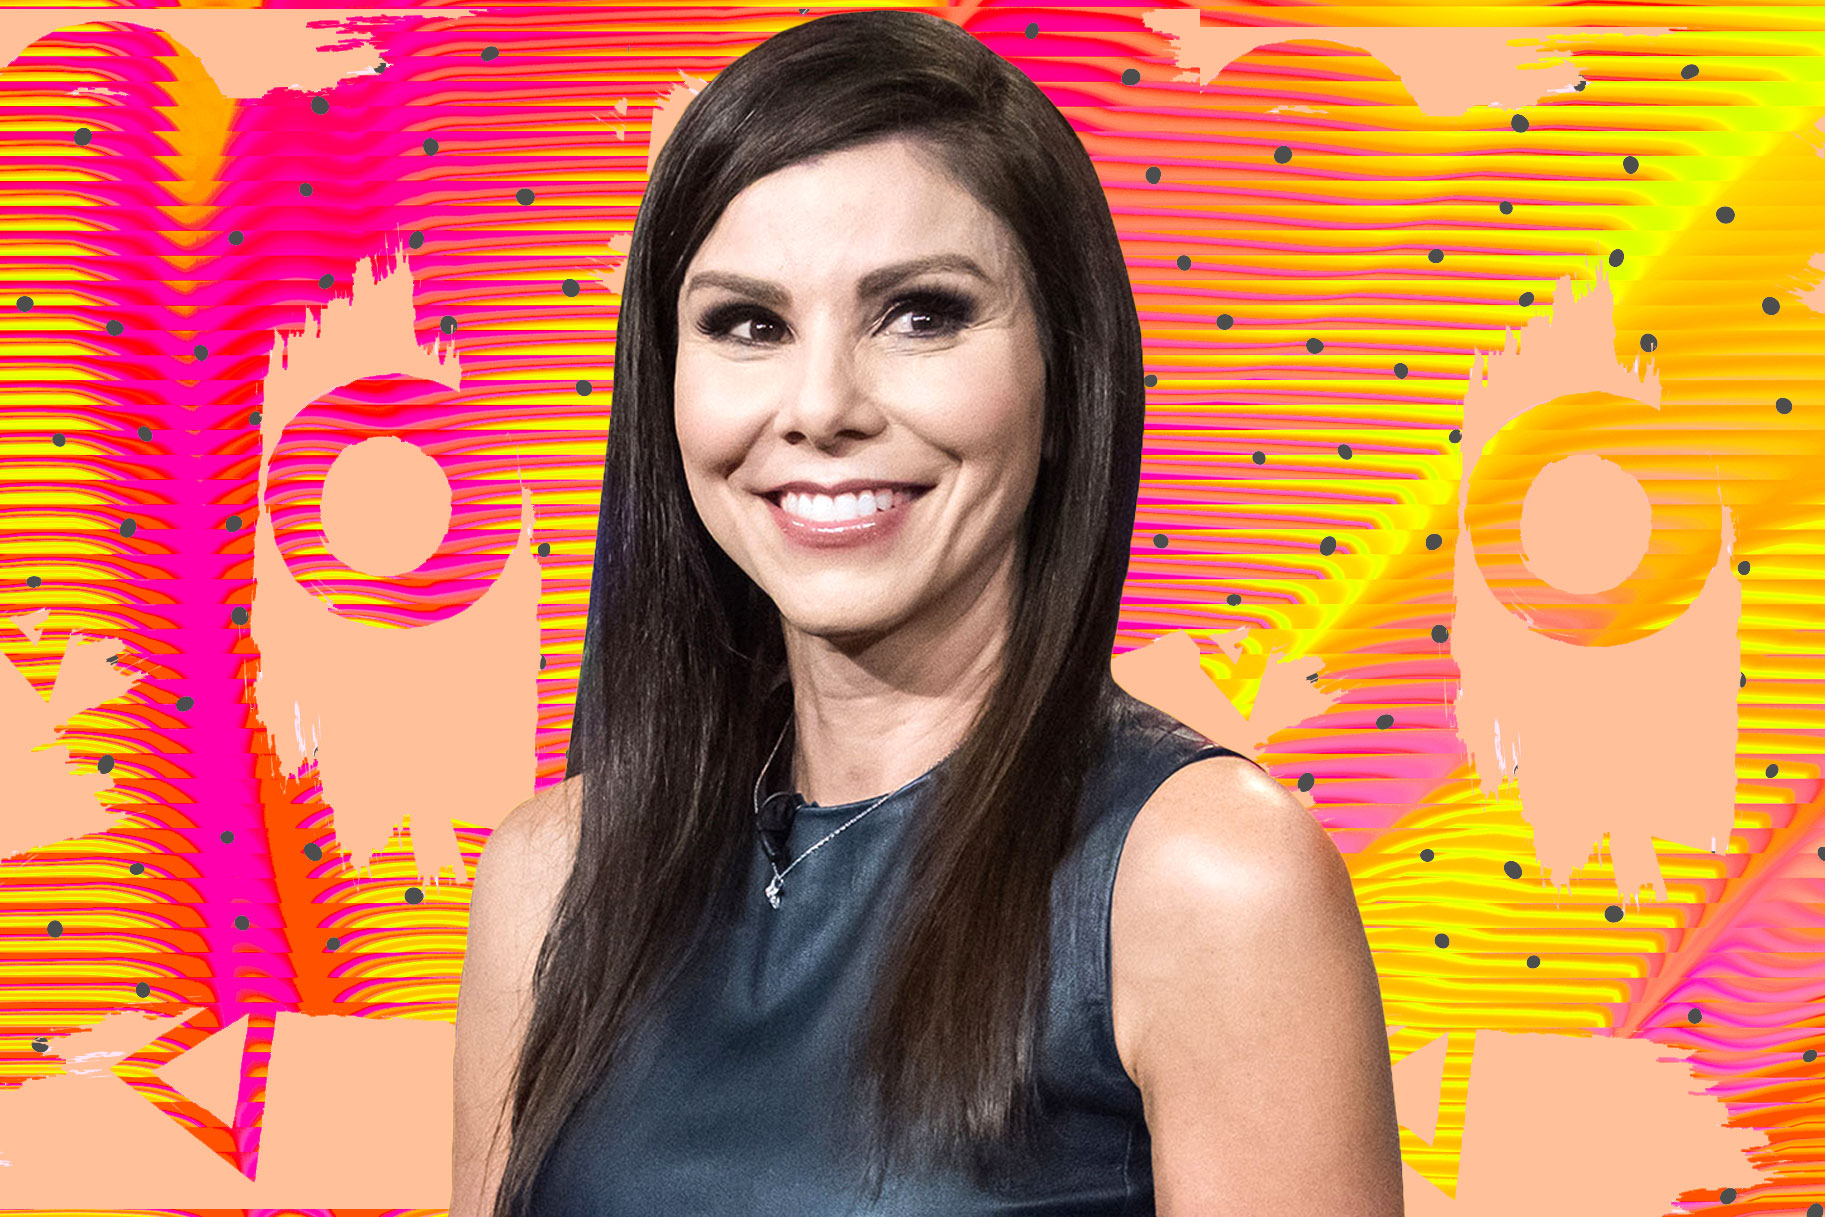 heather-dubrow-bikini-promote.jpg